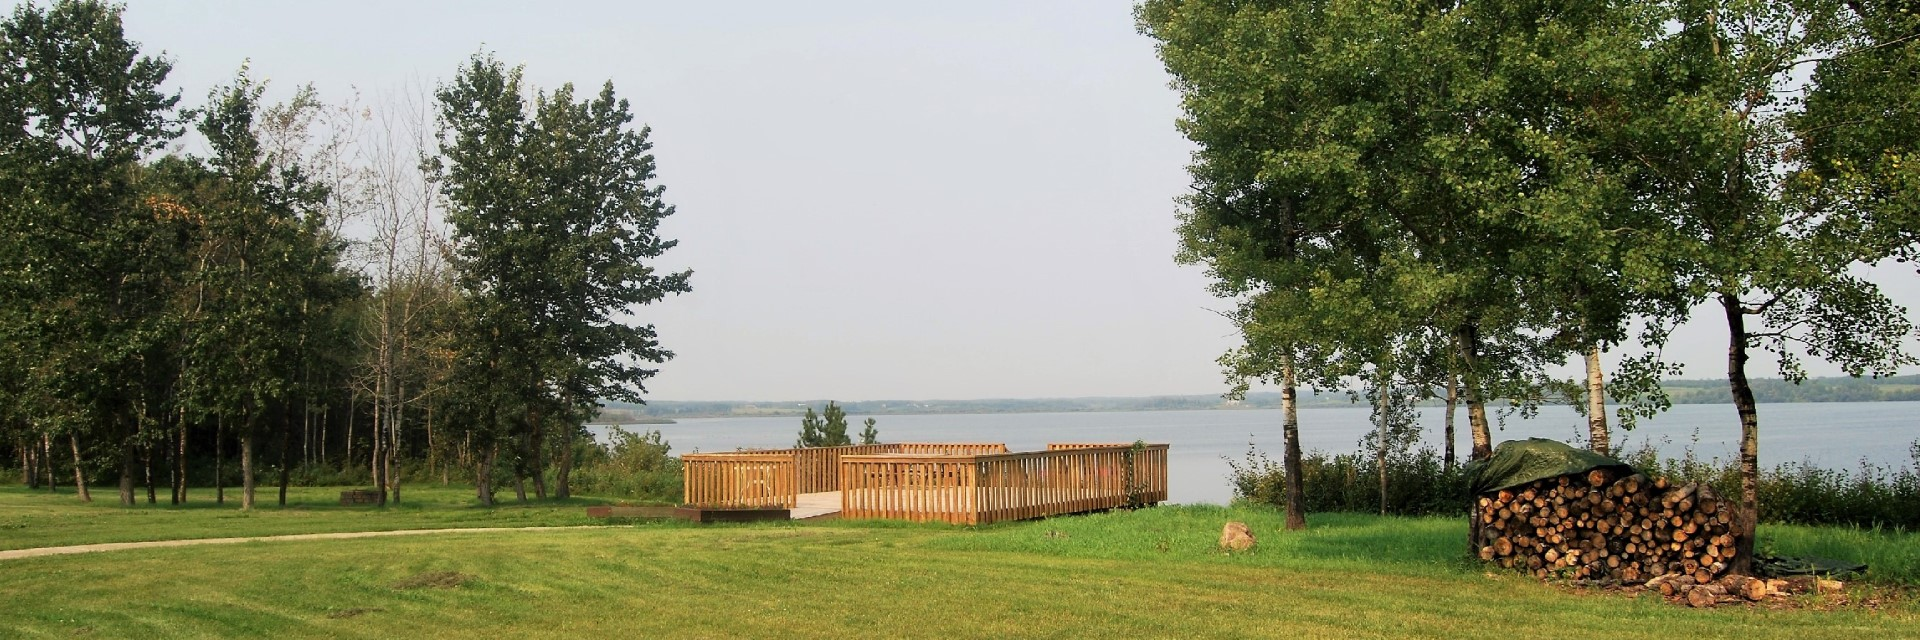 Eagle Healing Lodge lake